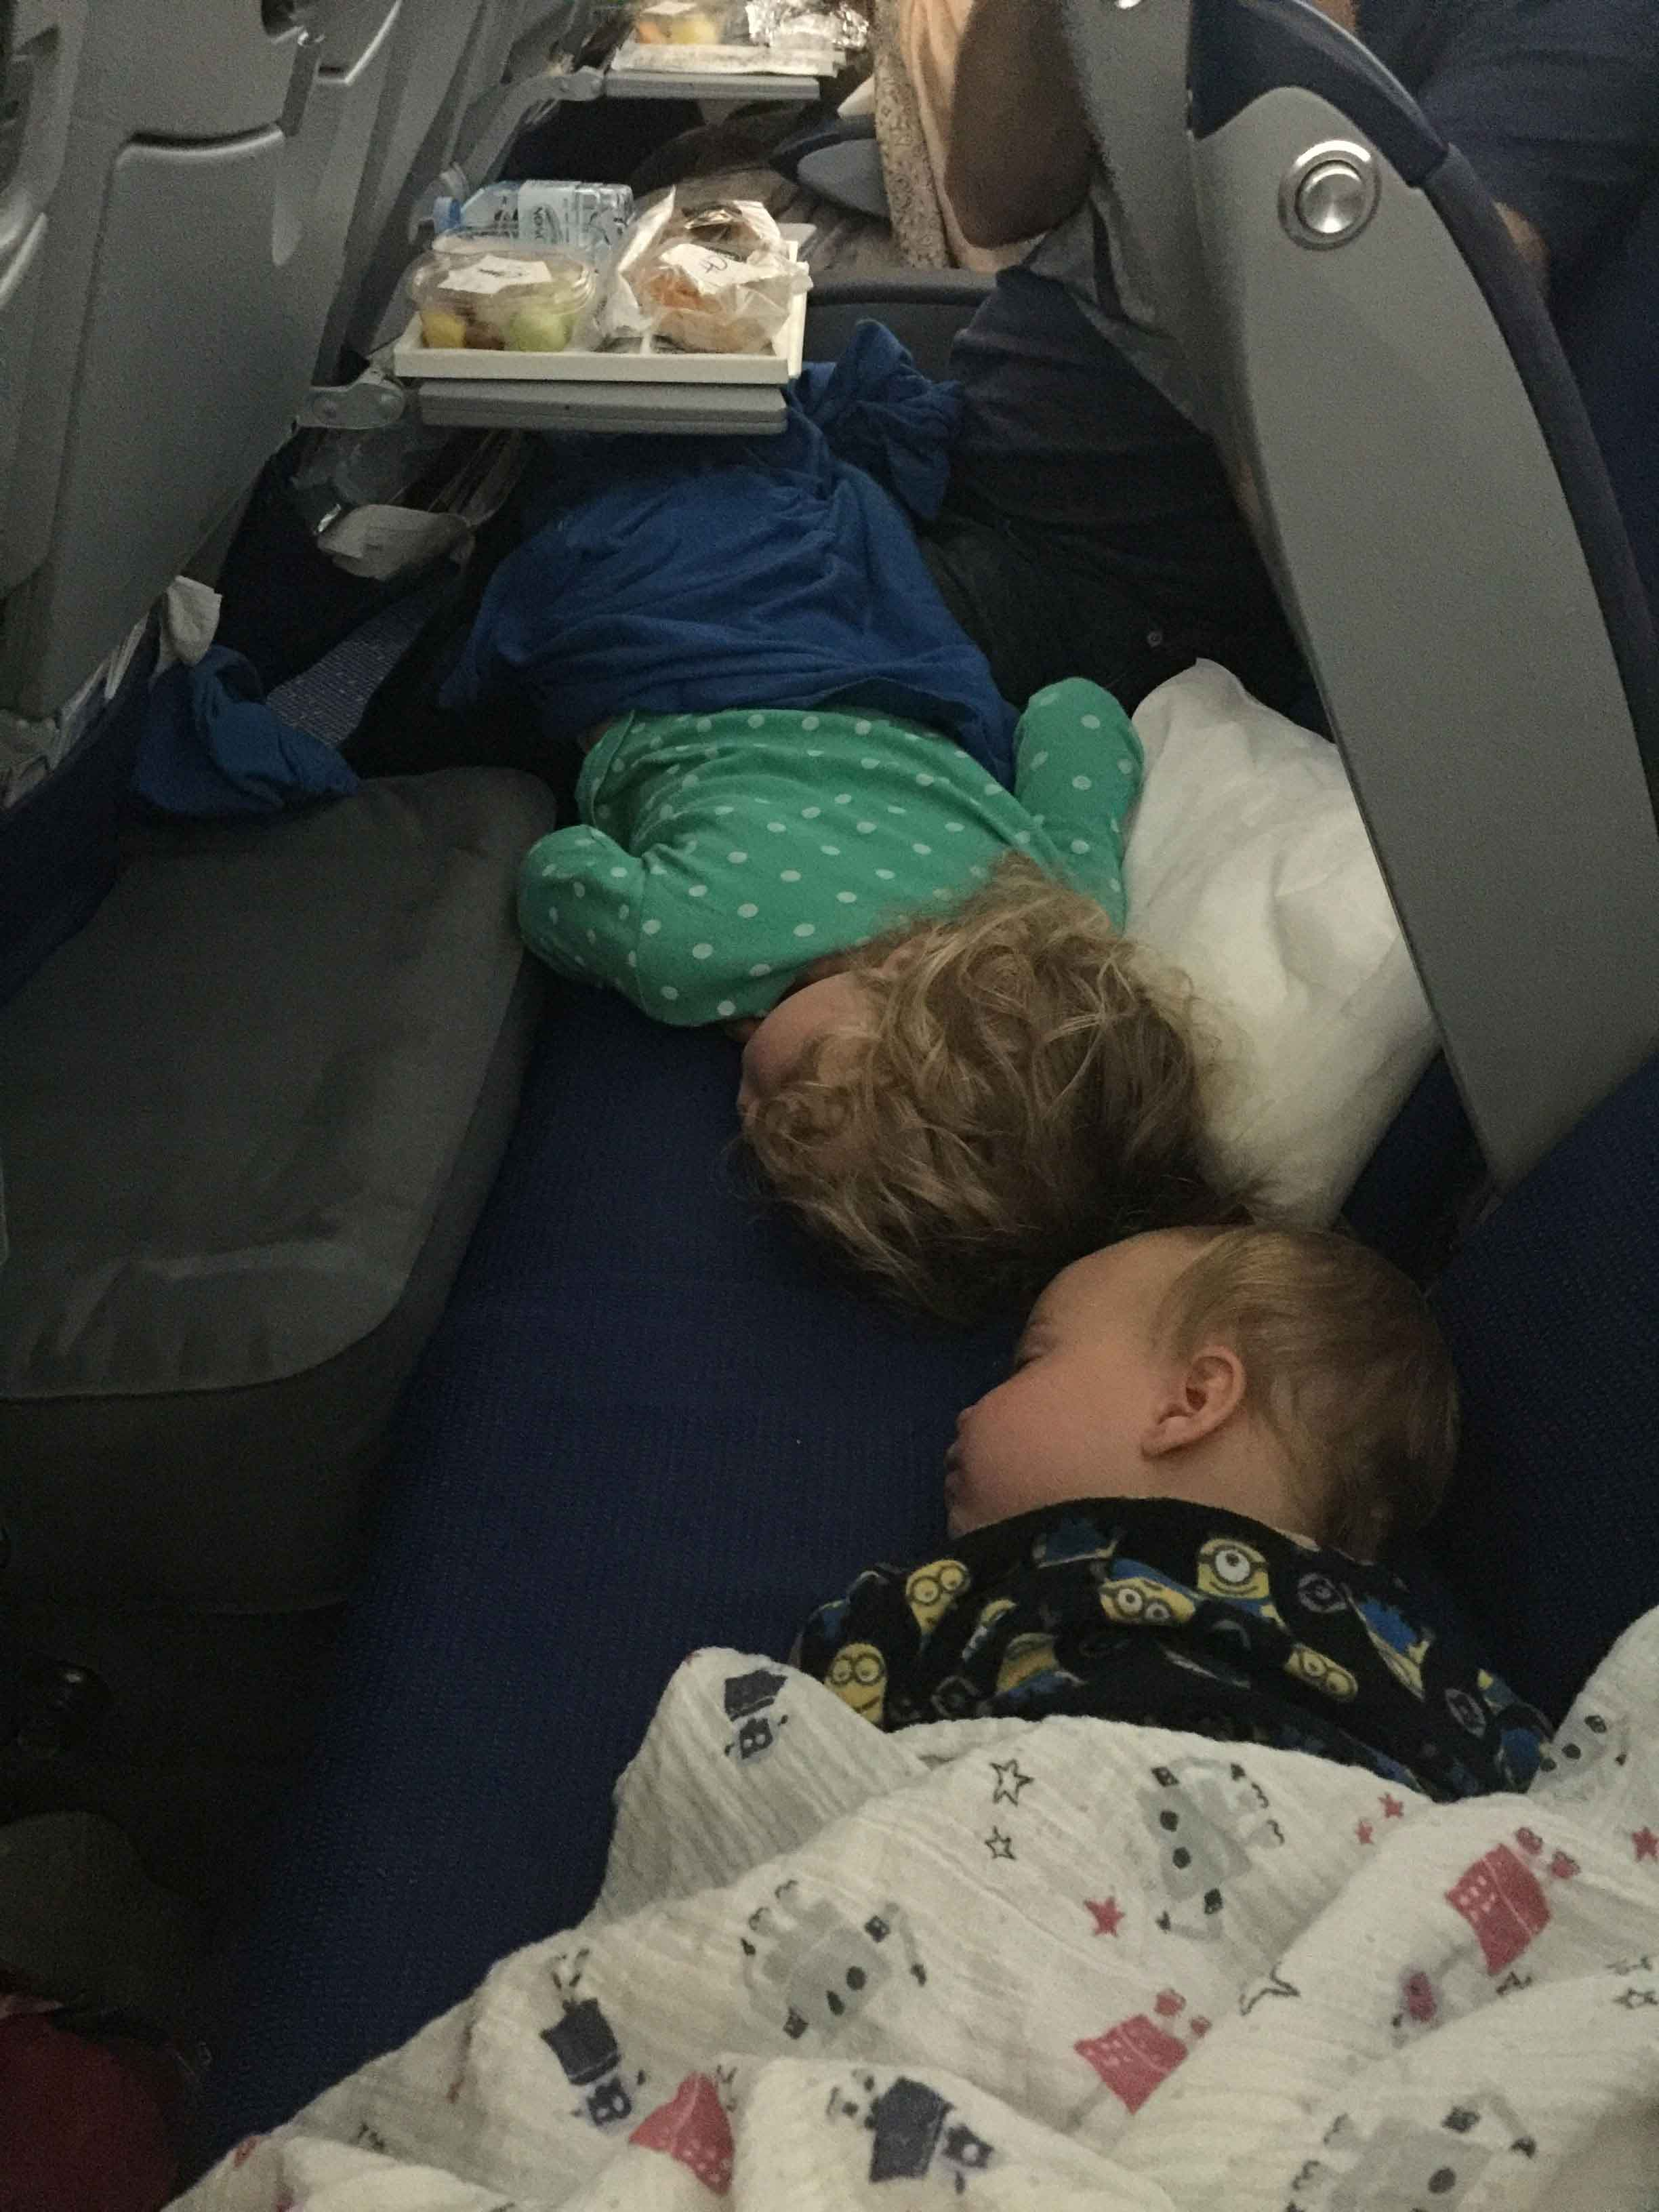 Baby-Can-Travel---Fly-Tot-Review---Inflatable-Travel-Bed-Baby-Sleeping-Flight-To-Norway-1